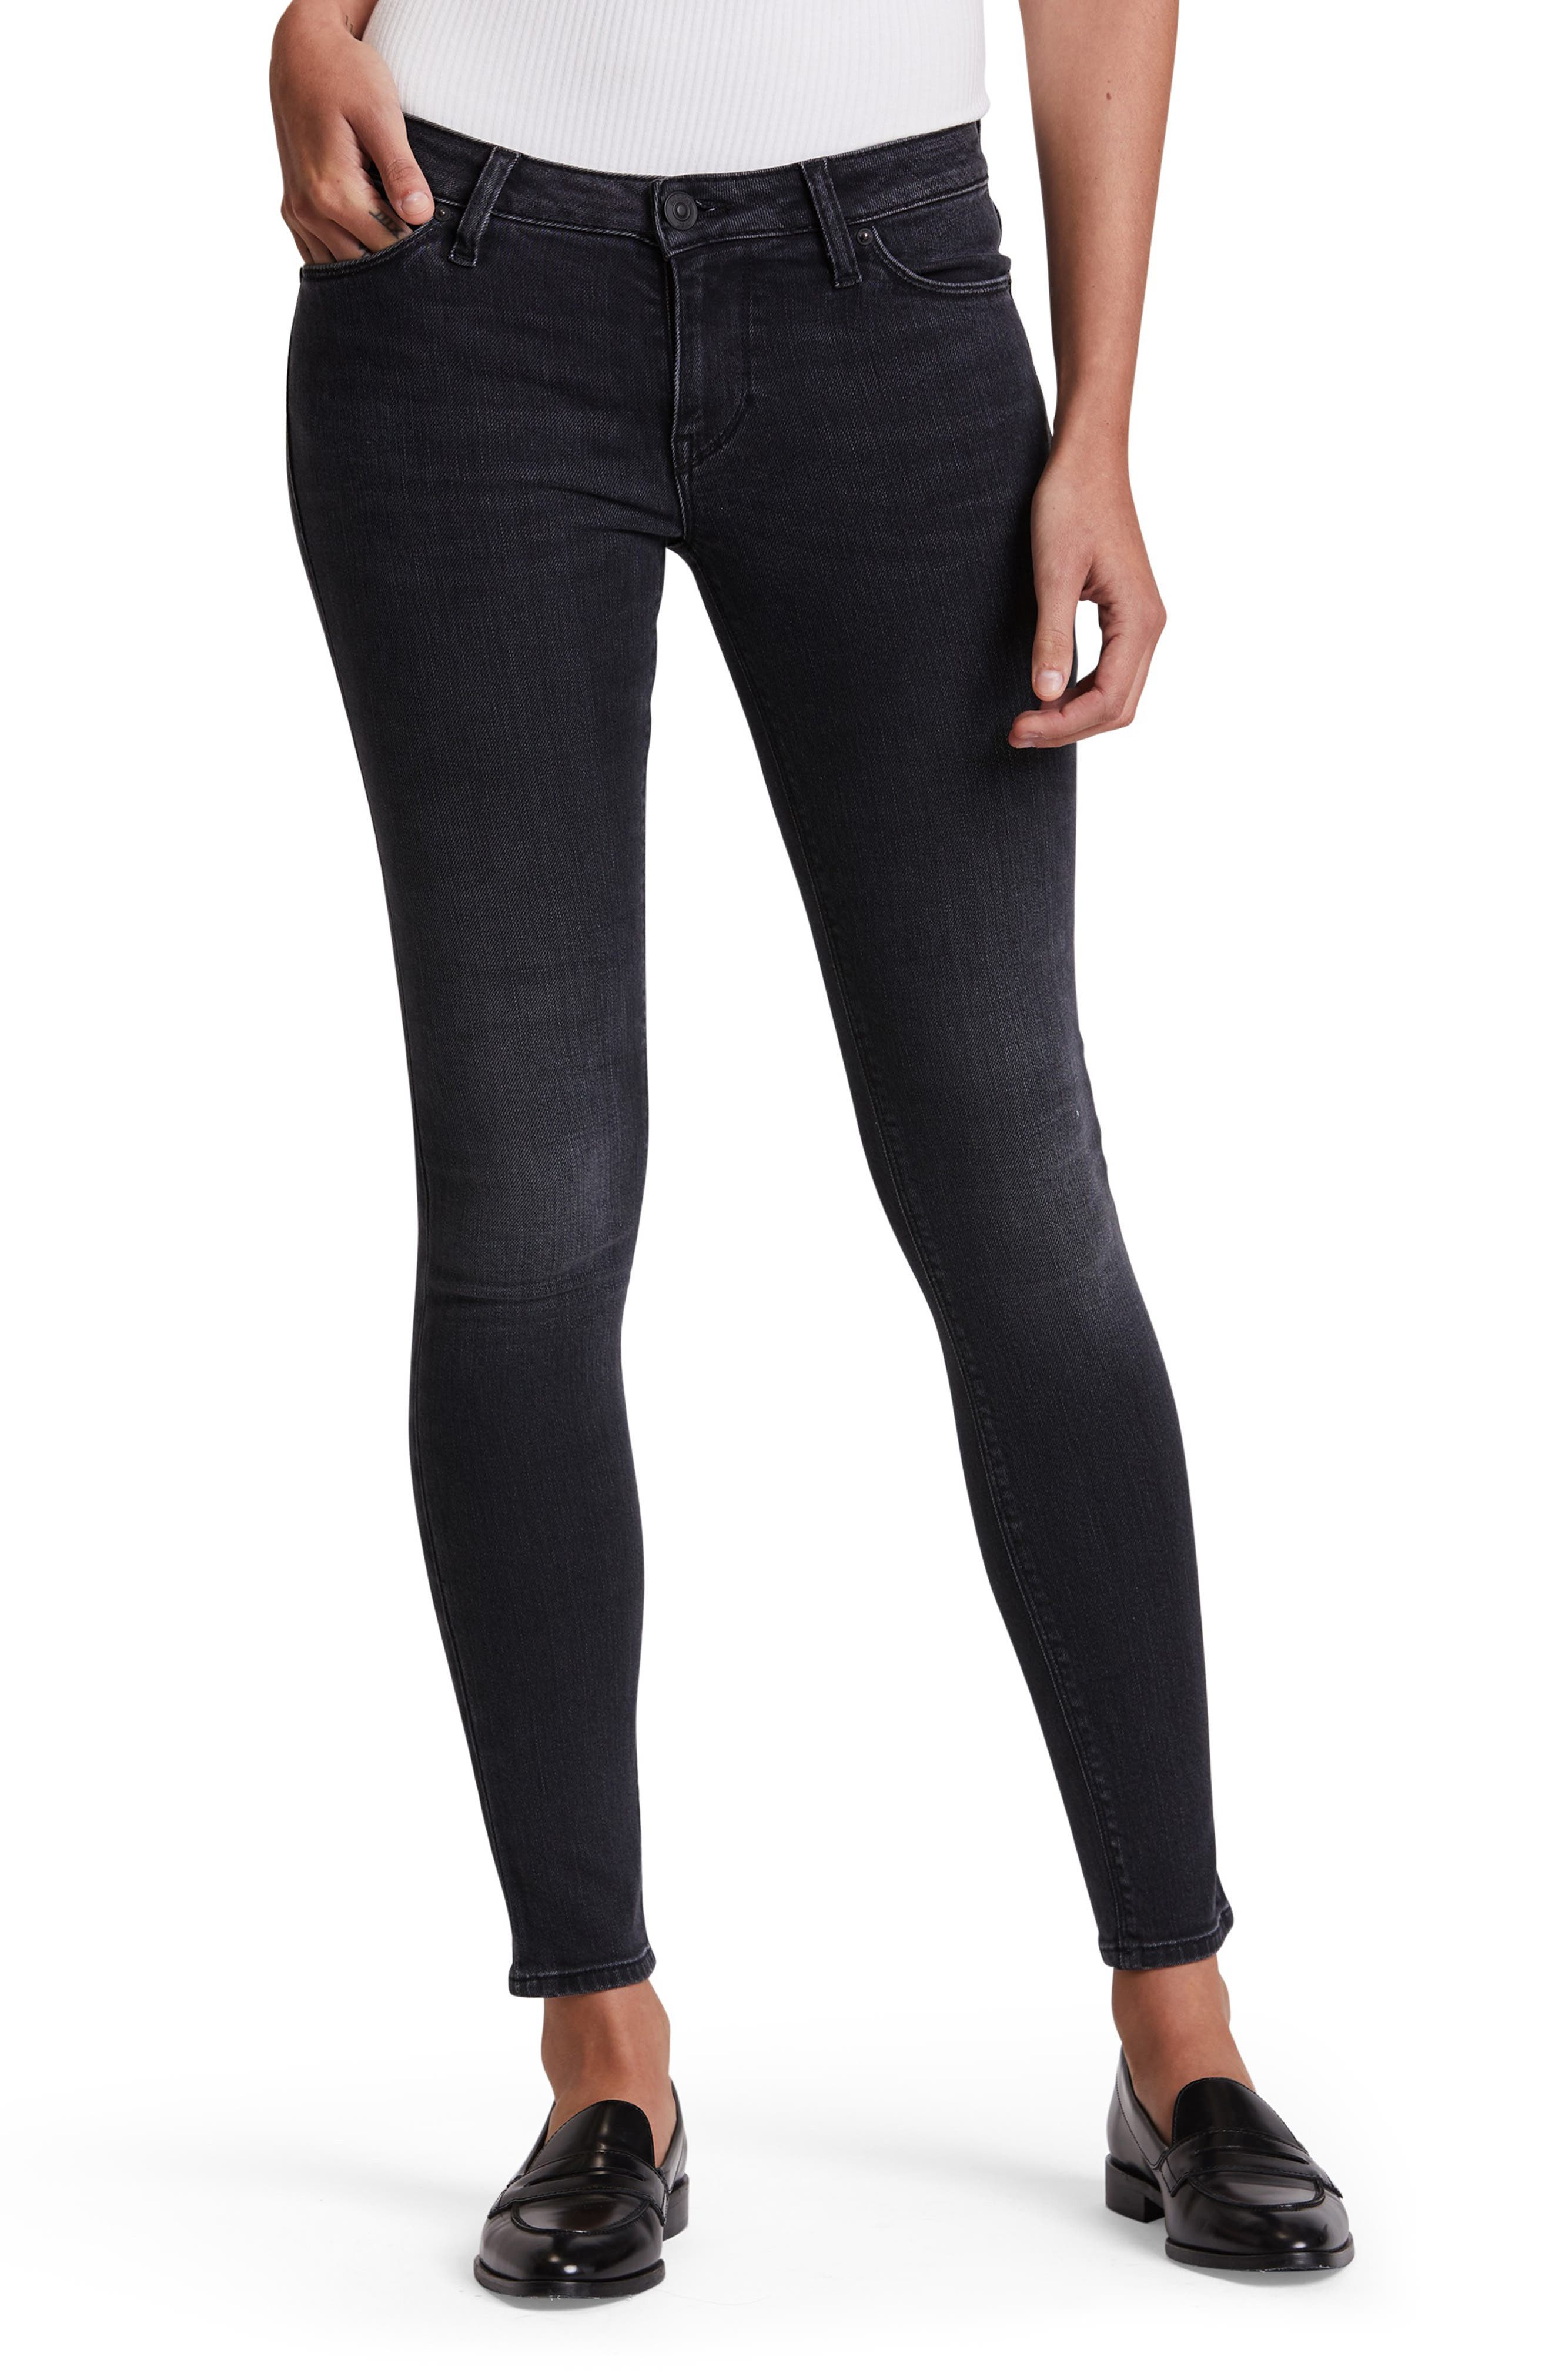 Made from power-stretch denim that smoothes, sculpts and never sags, these mid-rise skinnies will look great every time you put them on. Style Name: Hudson Jeans Krista Super Skinny Ankle Jeans. Style Number: 5892628. Available in stores.